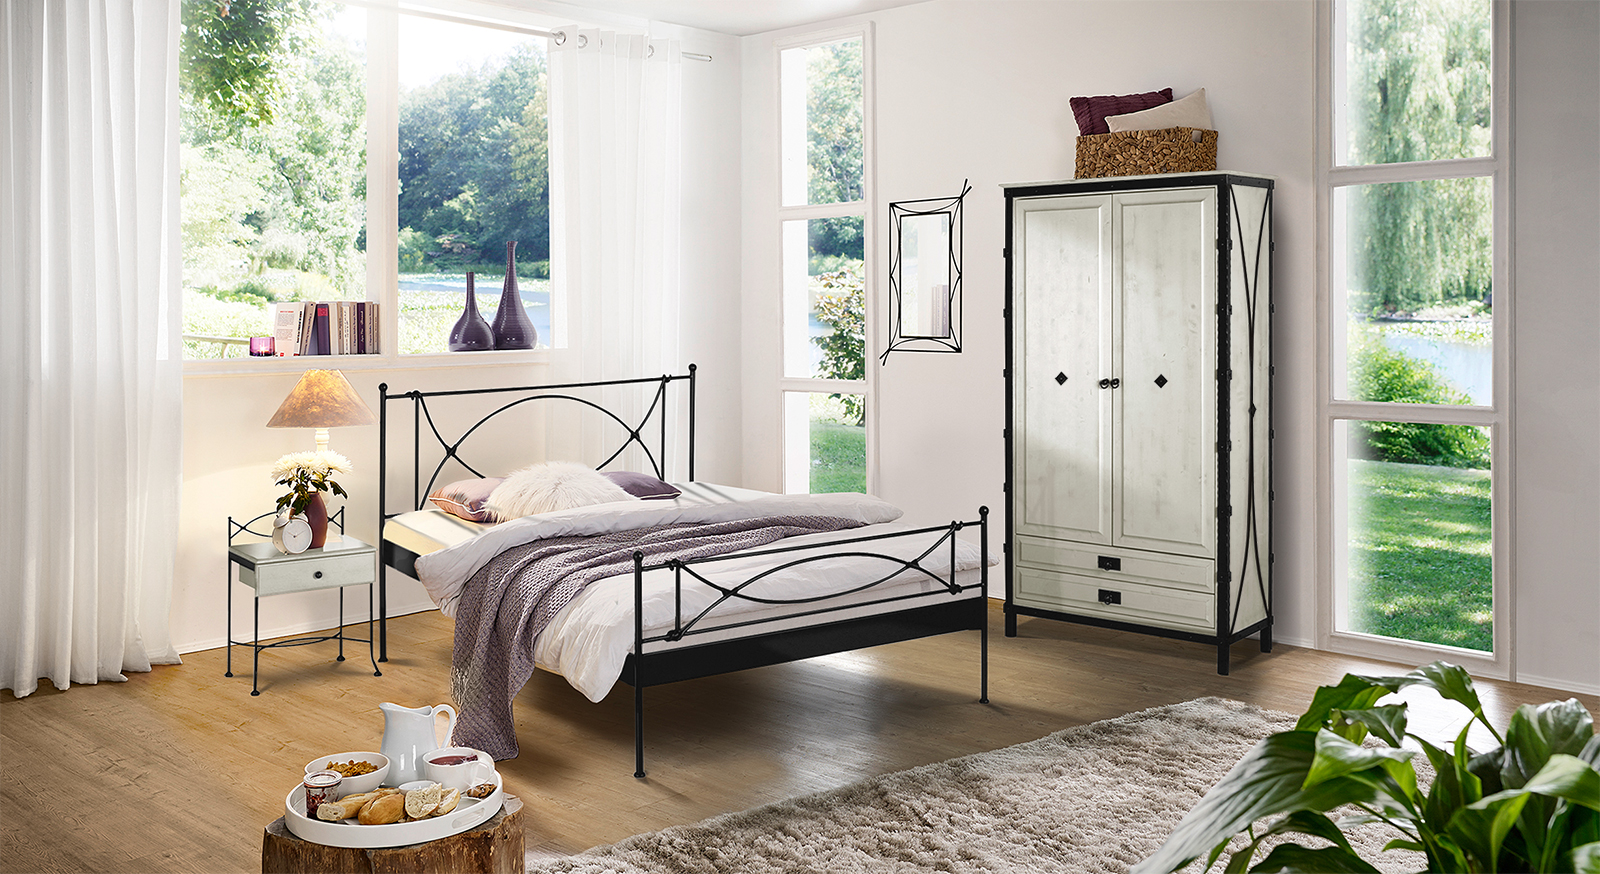 schlafzimmer im komplettangebot mit metallbett ordino. Black Bedroom Furniture Sets. Home Design Ideas